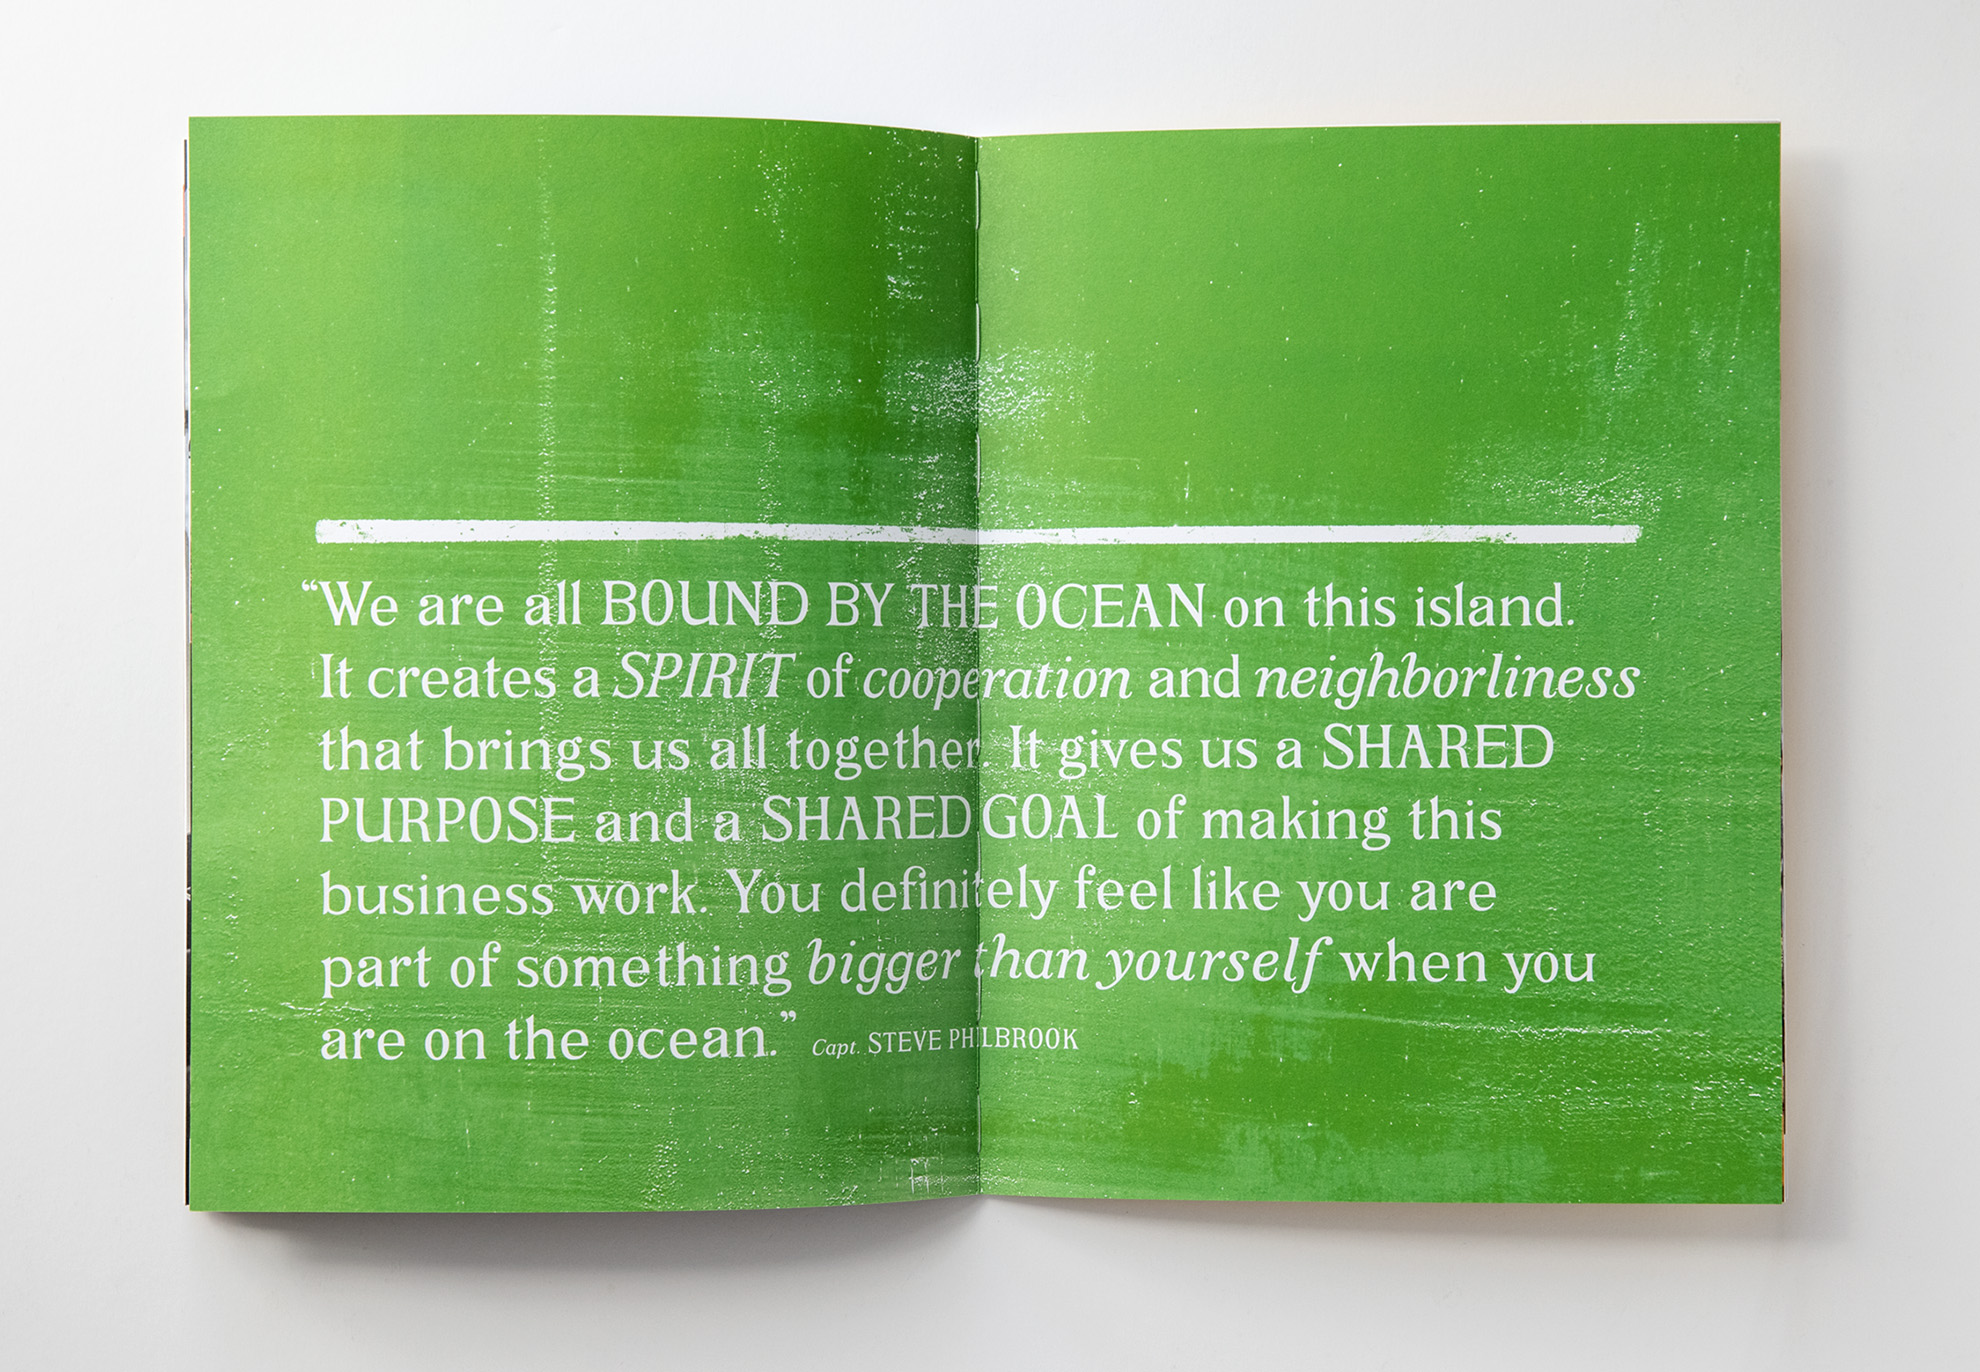 Tadd Myers promo booklet of the Lobstermen of Little Cranberry Island quote from captain Steve Philbrook